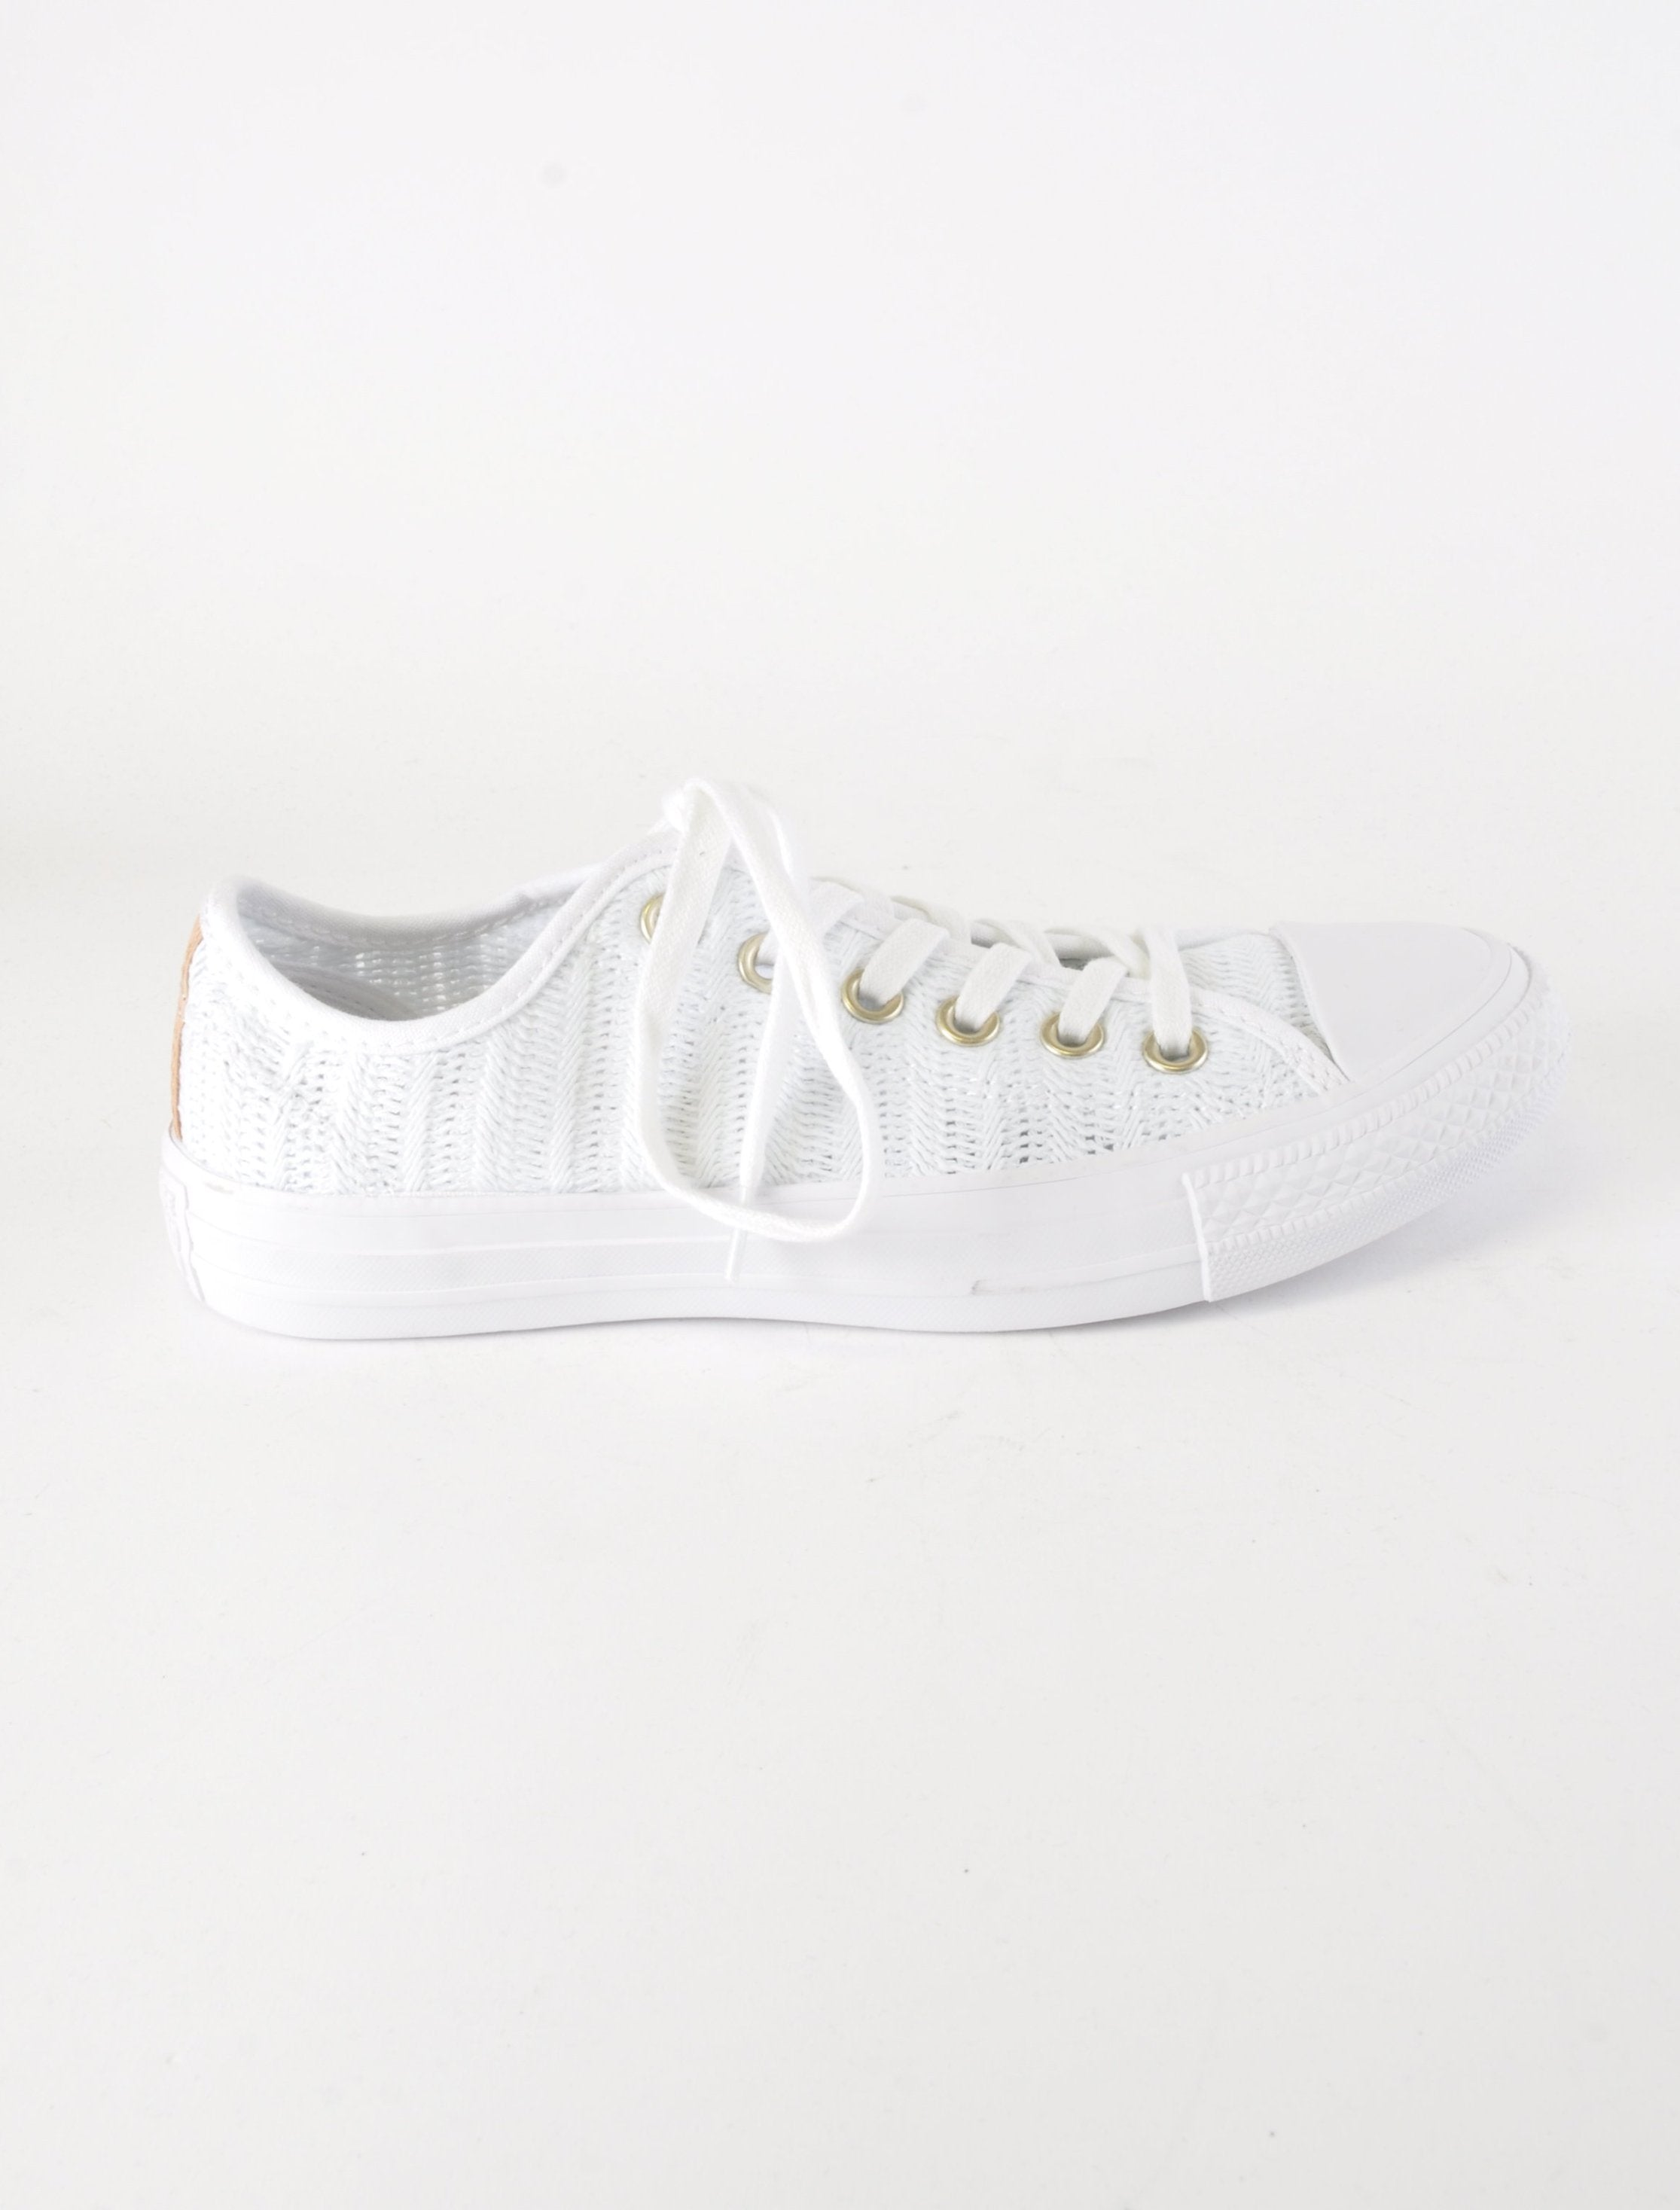 White Knitted Lowtop Converse - New But Imperfect